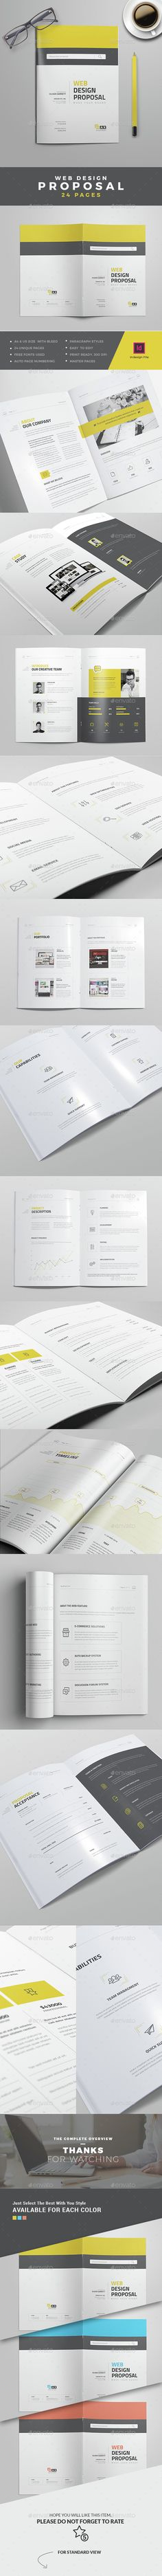 development project proposal template%0A Indesign Proposal Template   Proposal templates  Proposals and Template